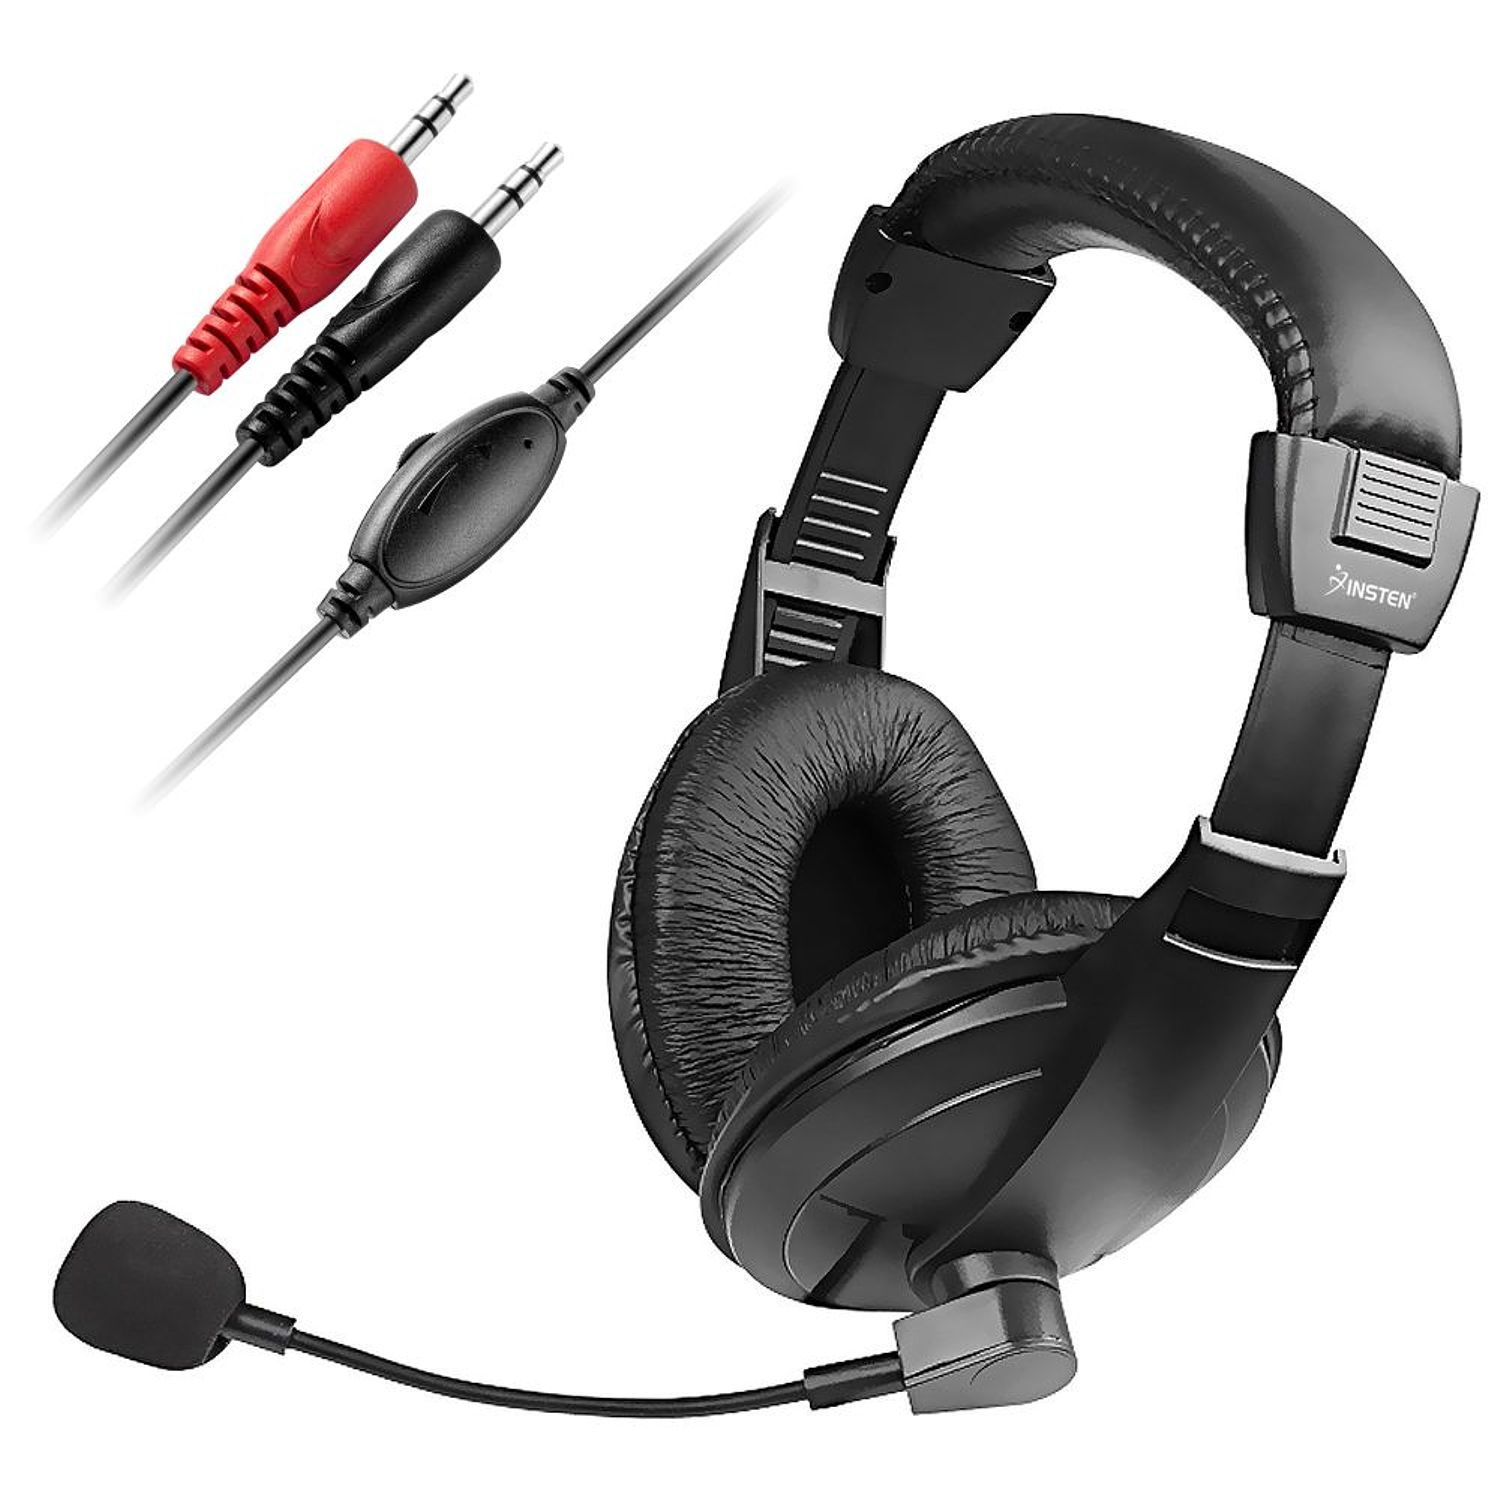 Insten VOIP / SKYPE Hands-free Headset Headphone with Microphone, Black